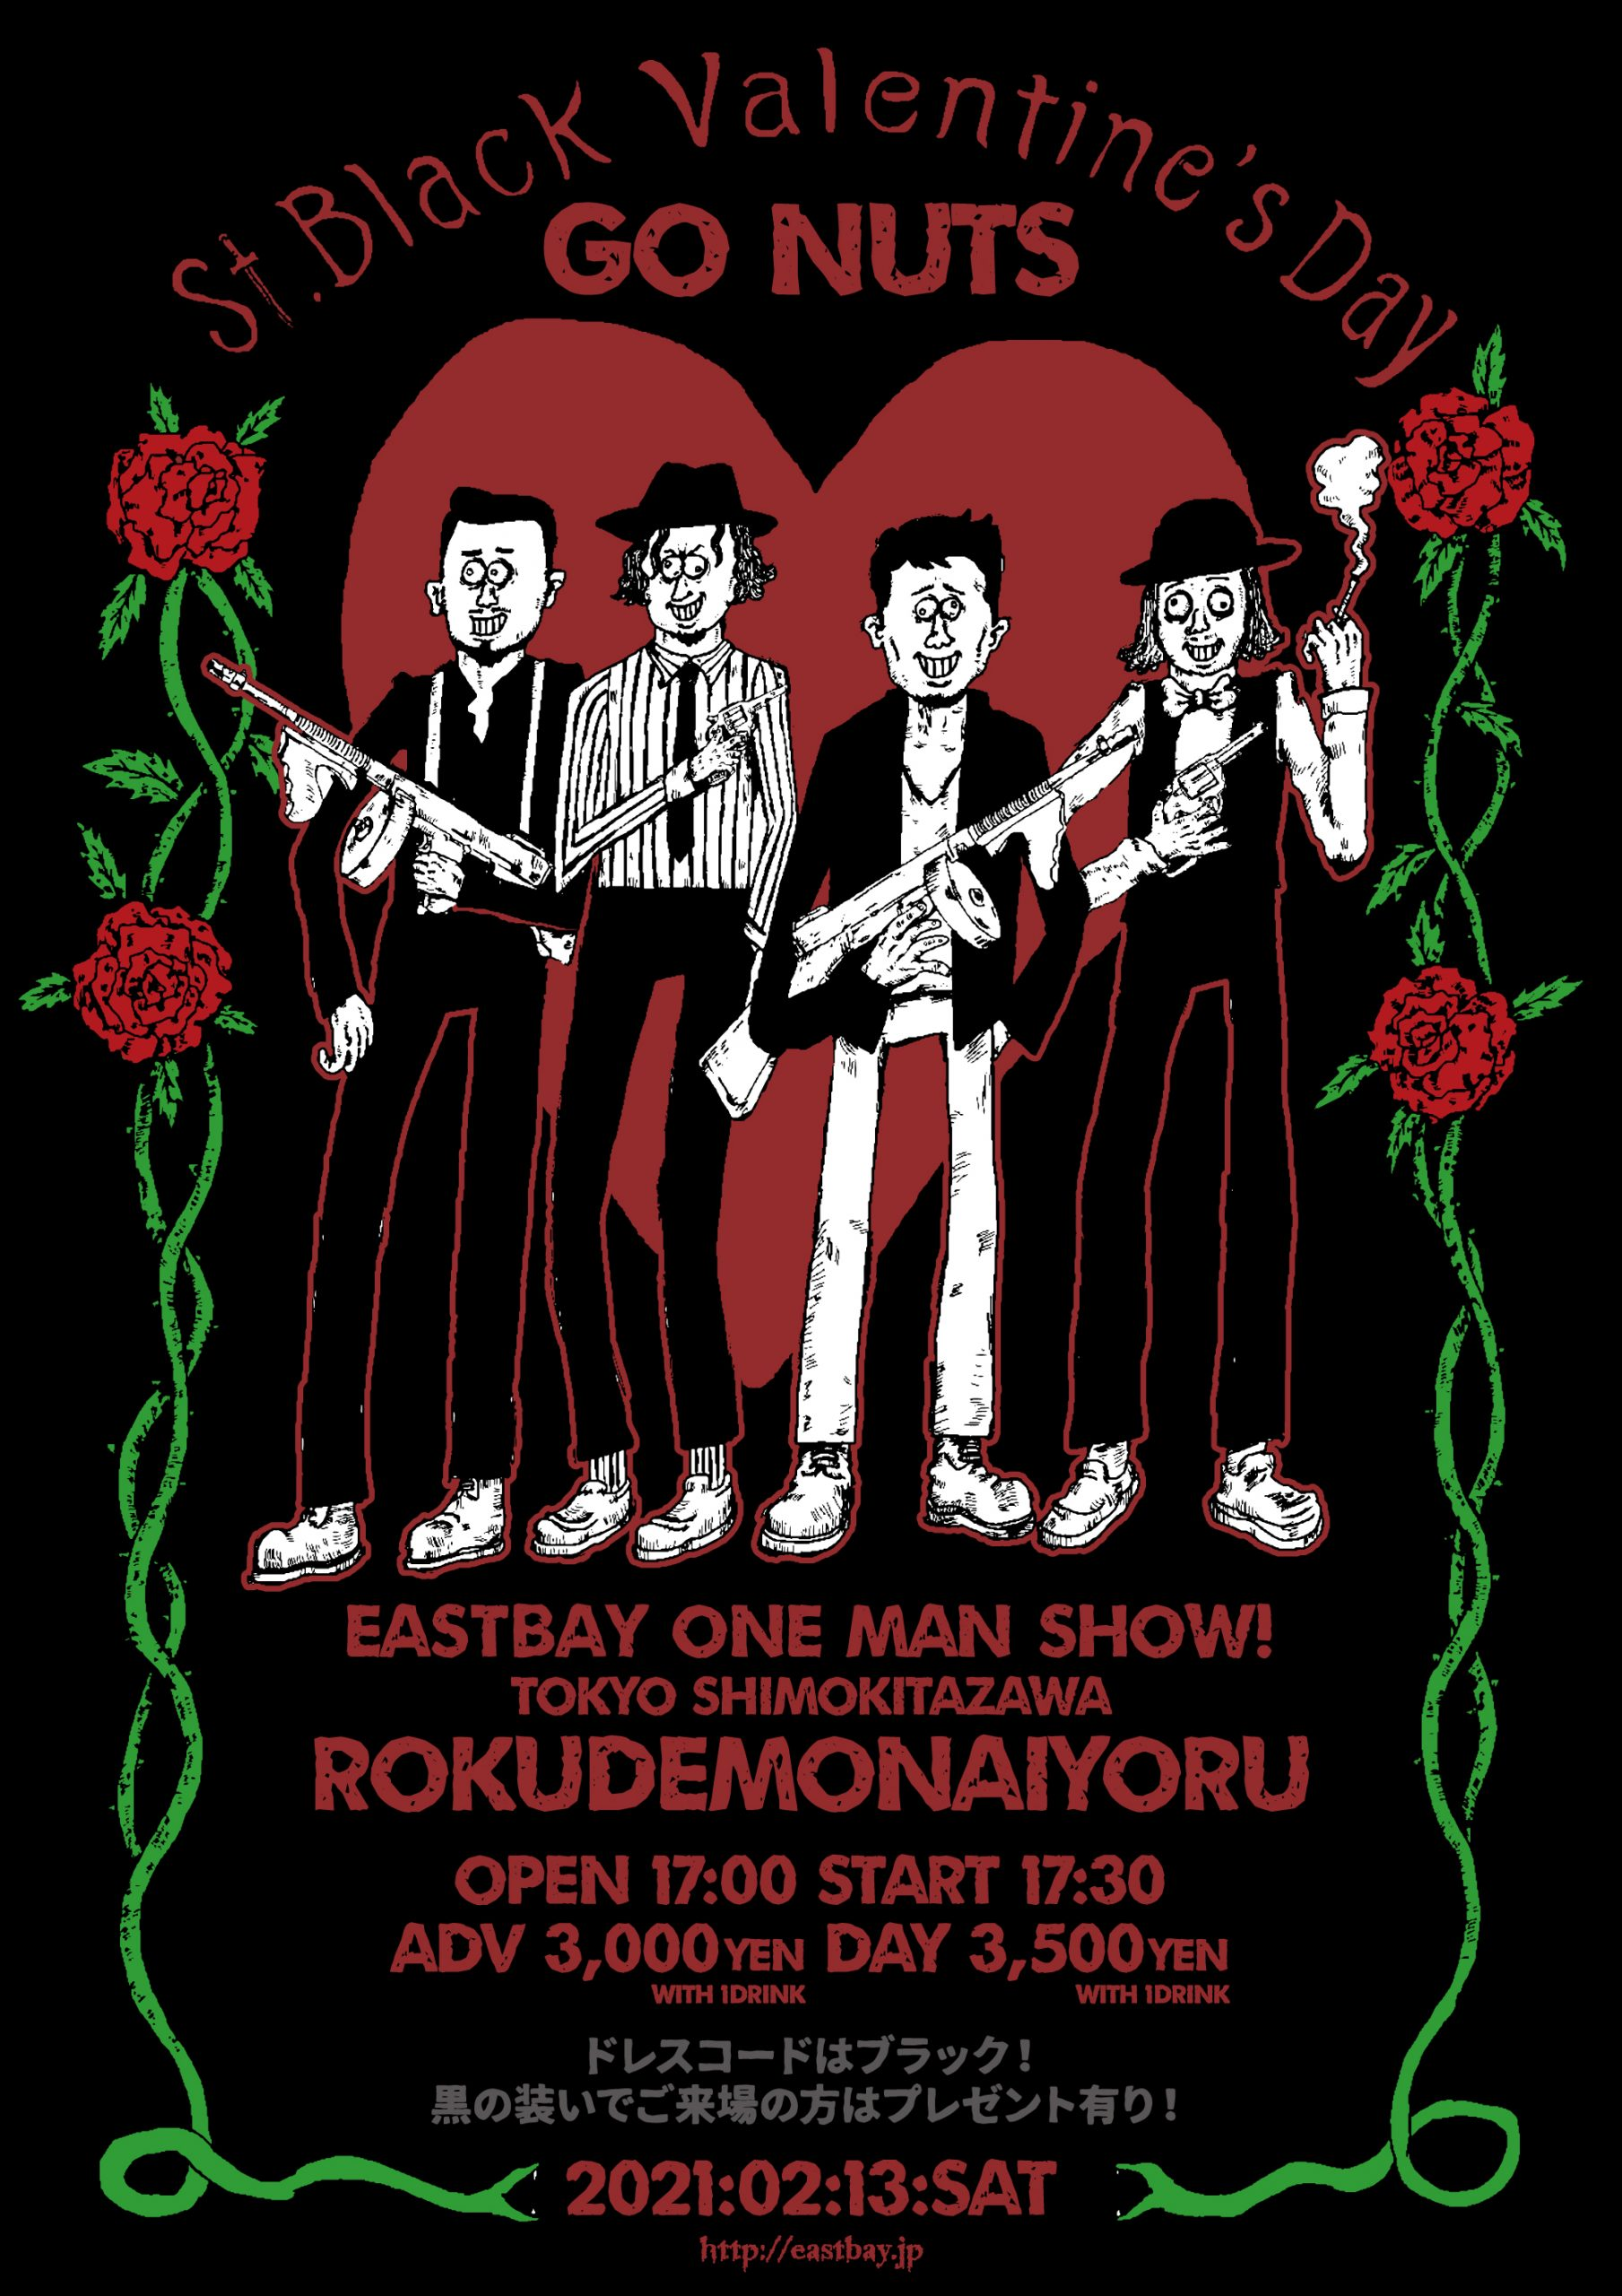 Black Valentine's Day【Go Nuts】EASTBAY ONEMAN SHOW!